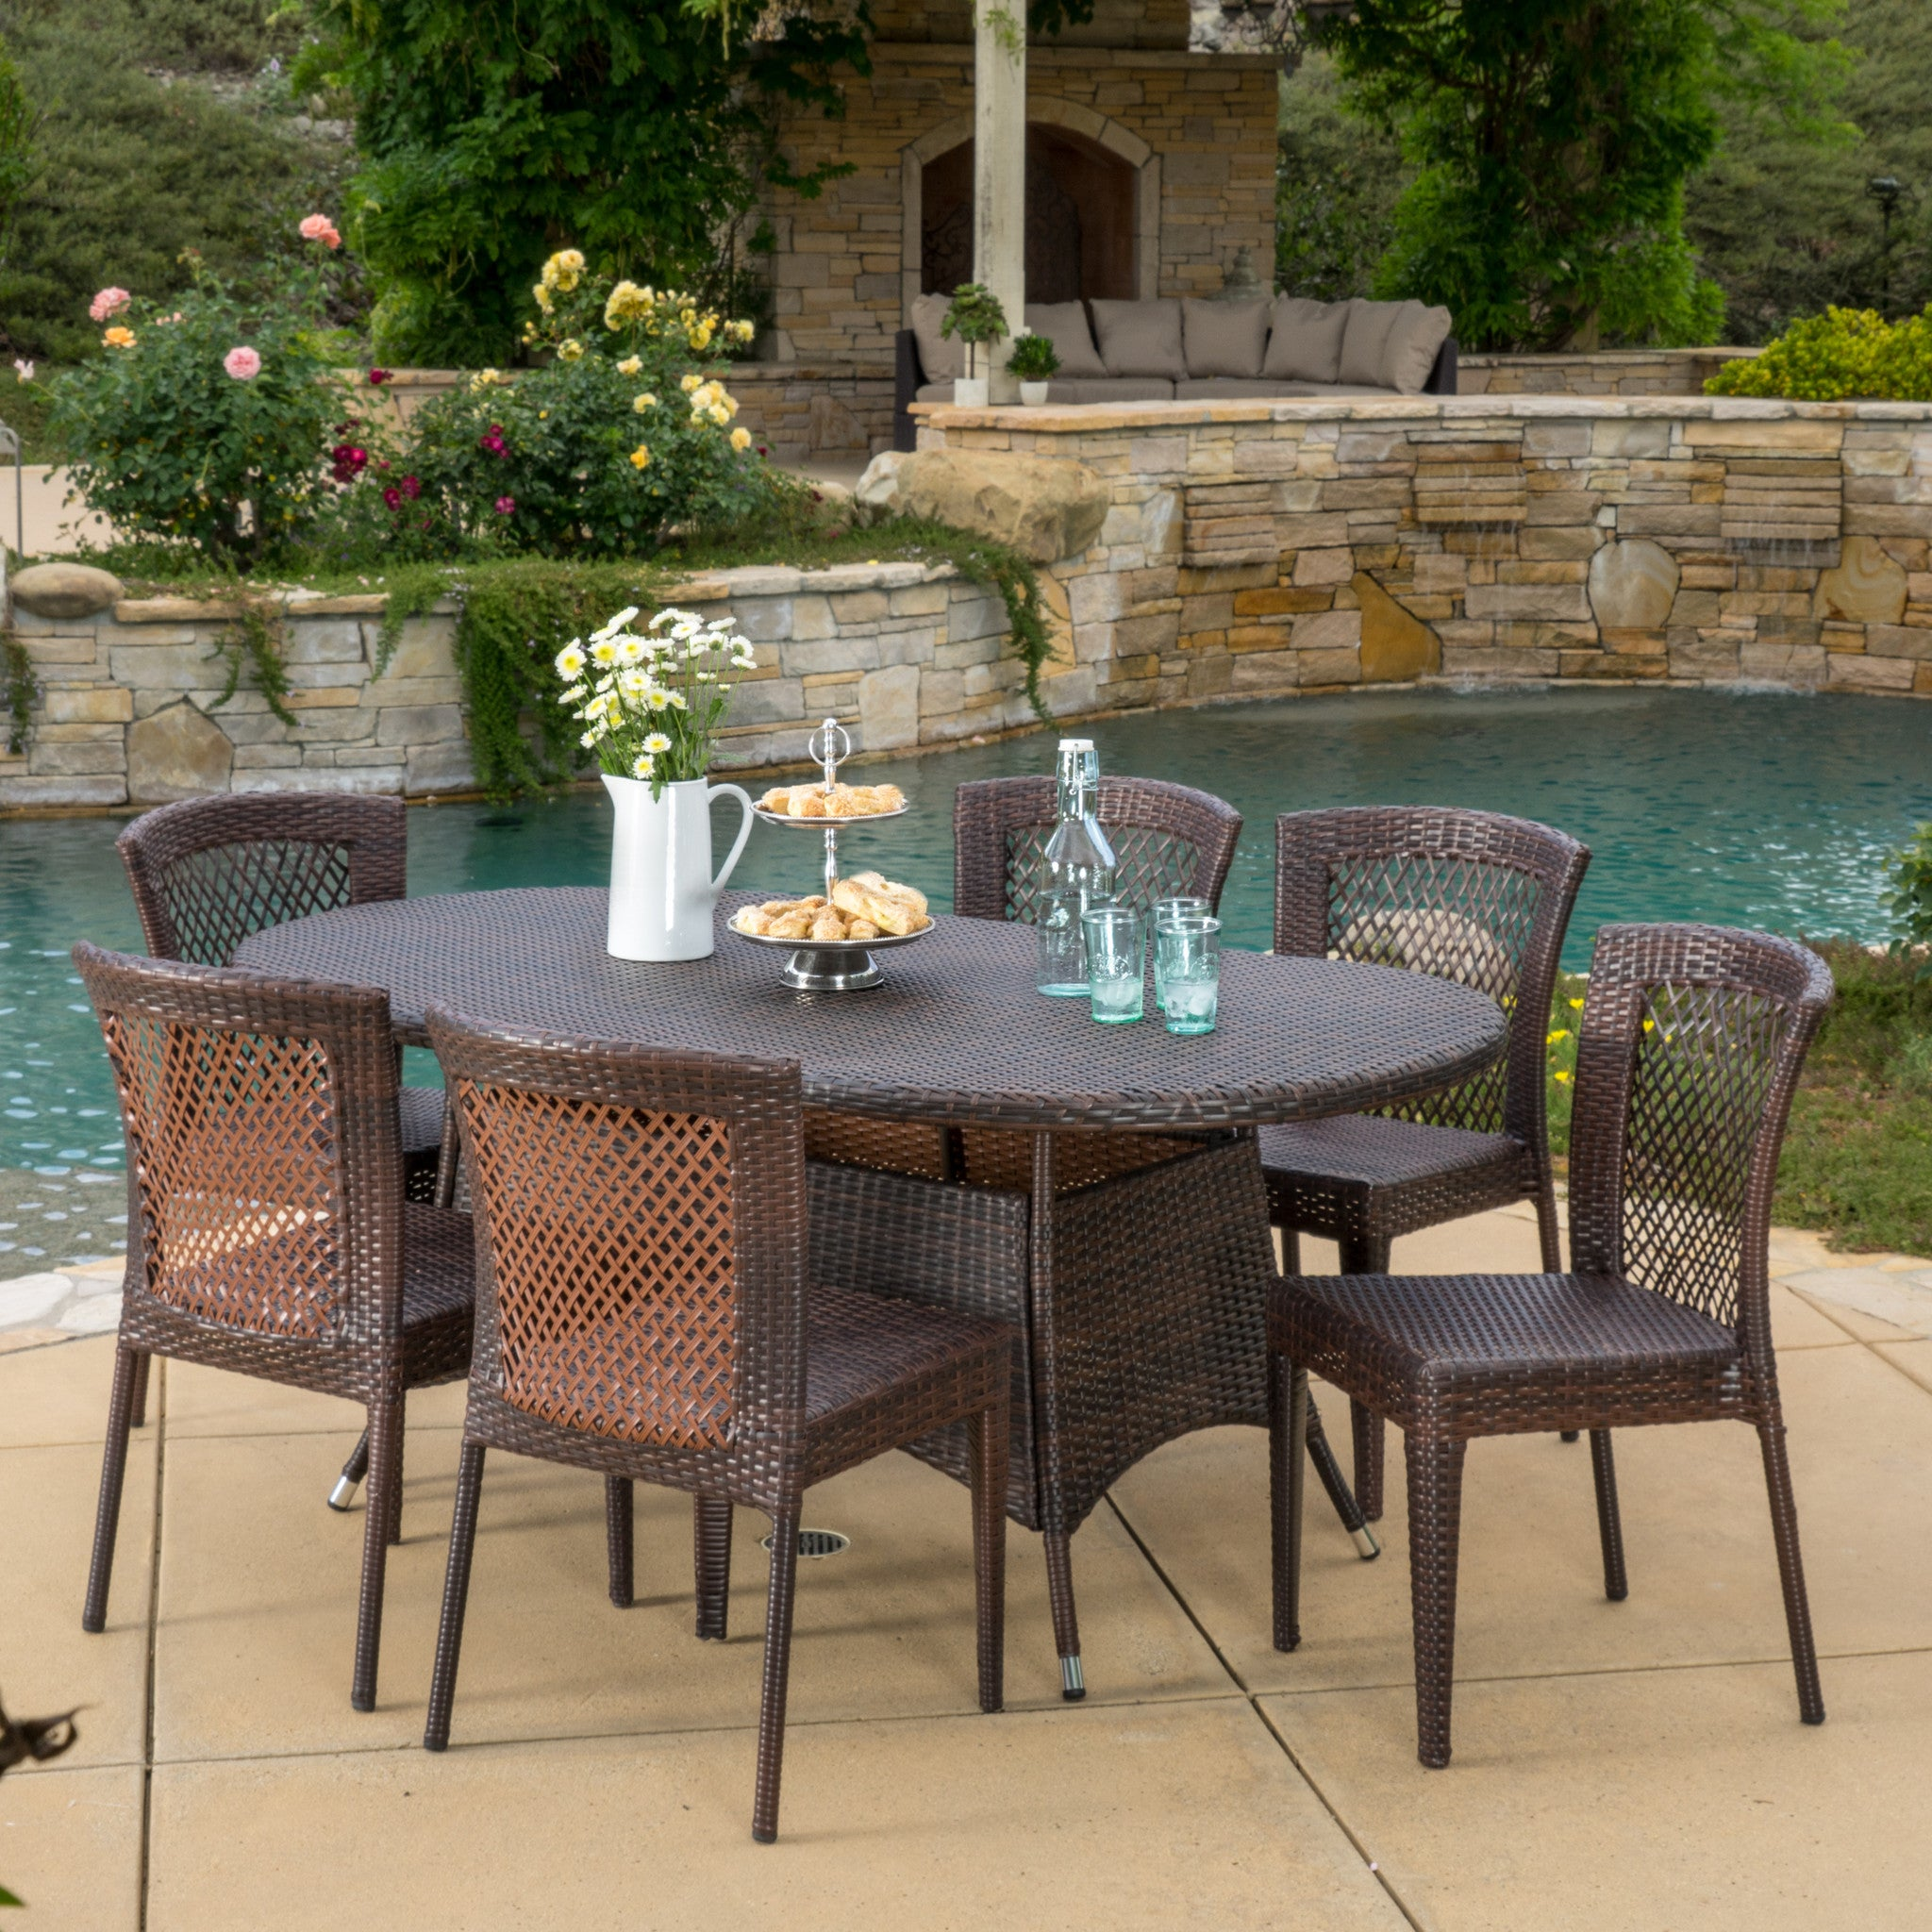 Outdoor Multibrown Wicker Round Dining Set foto